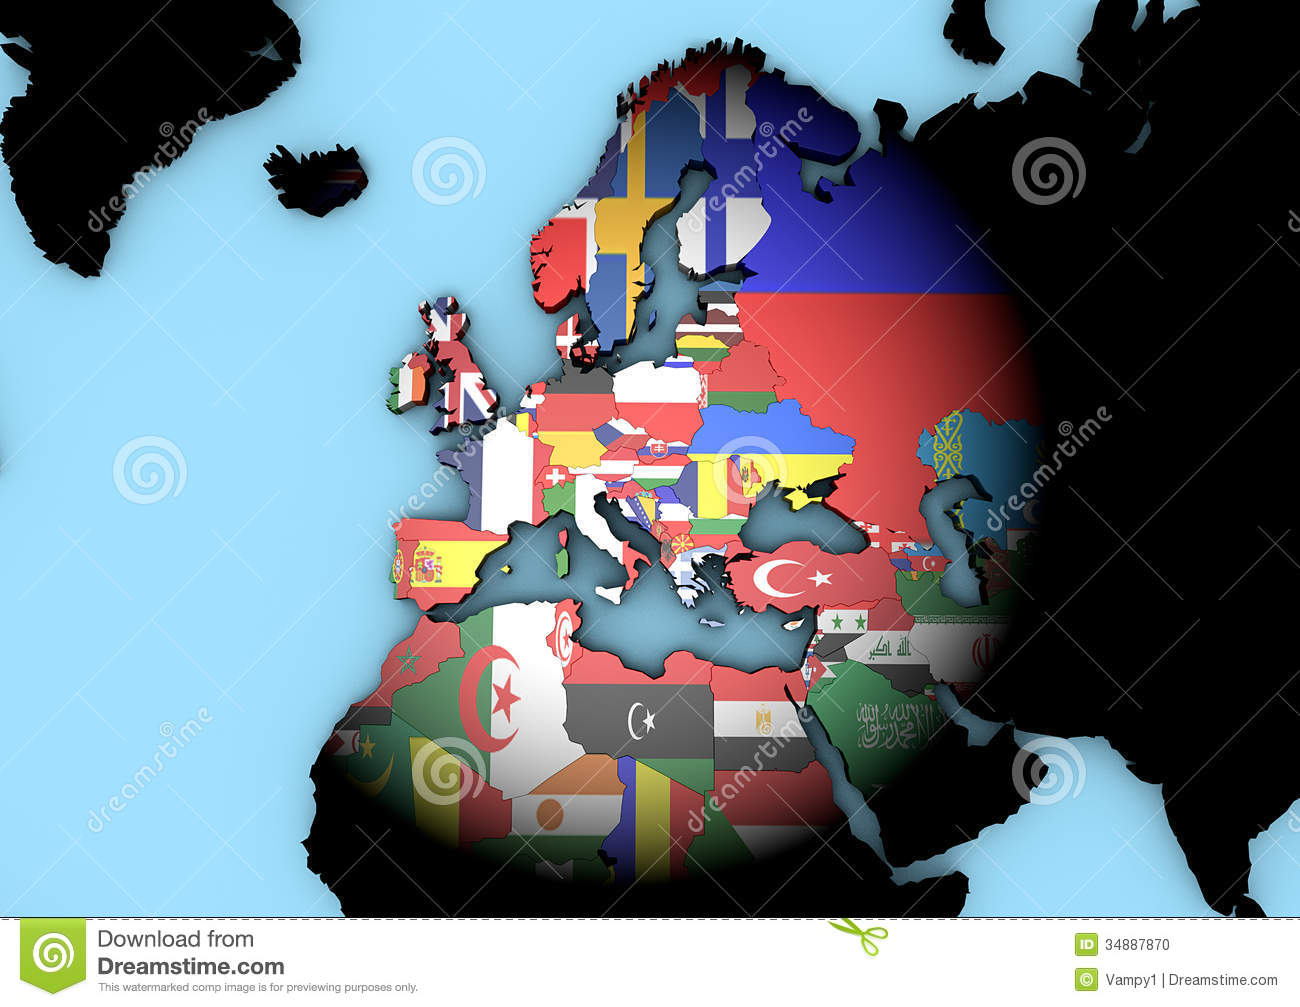 Europe world map with flags stock illustration illustration of europe world map with flags gumiabroncs Gallery